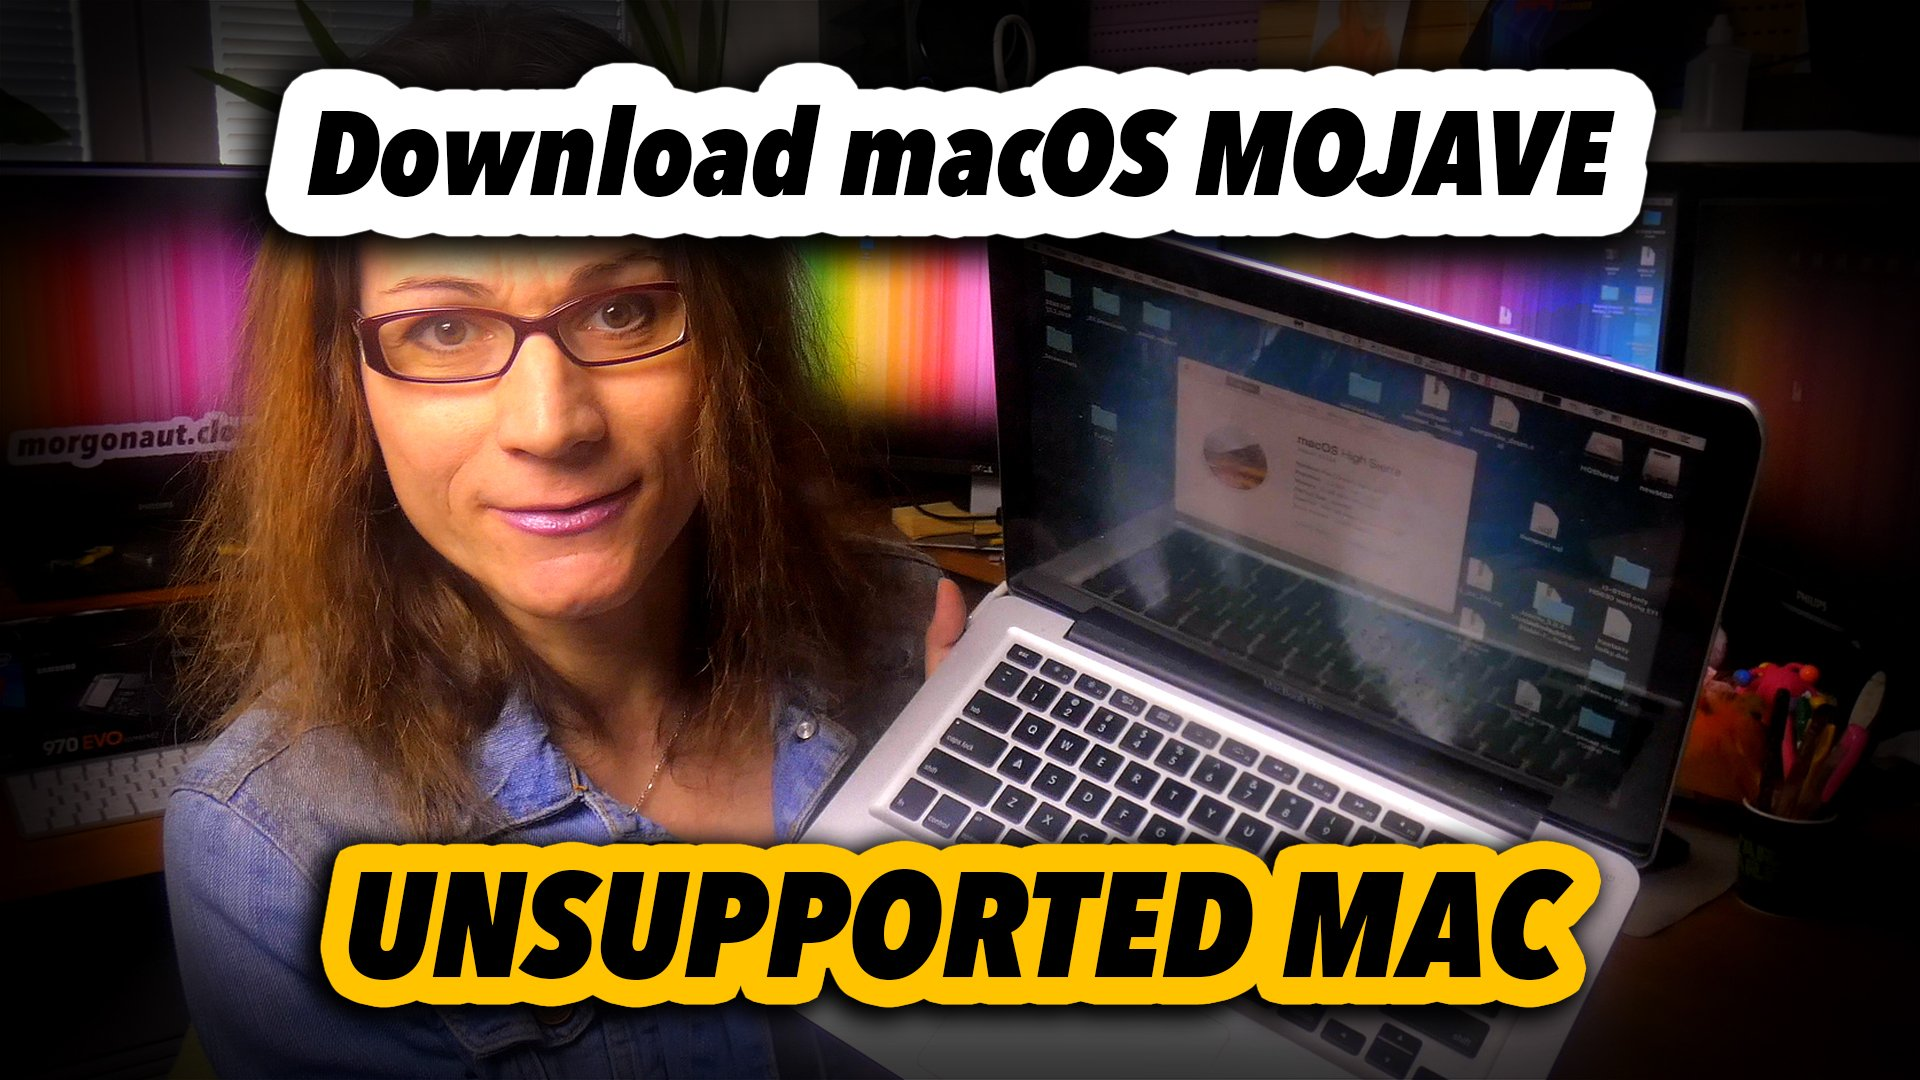 How To Download macOS Mojave Installer on Unsupported Mac - MORGONAUT